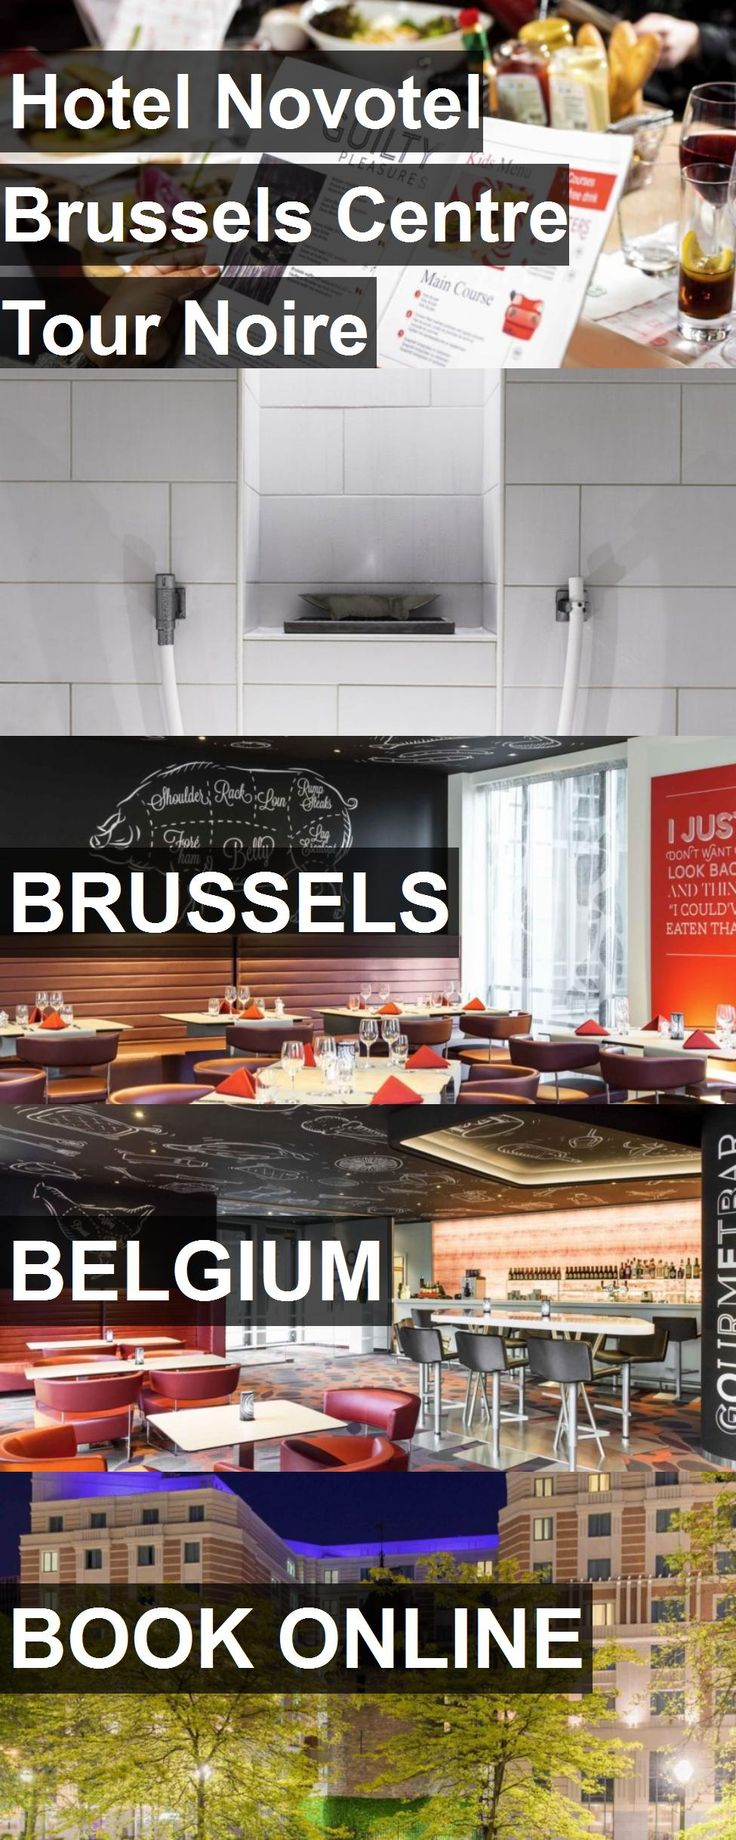 Hotel Hotel Novotel Brussels Centre Tour Noire in Brussels, Belgium. For more information, photos, reviews and best prices please follow the link. #Belgium #Brussels #HotelNovotelBrusselsCentreTourNoire #hotel #travel #vacation